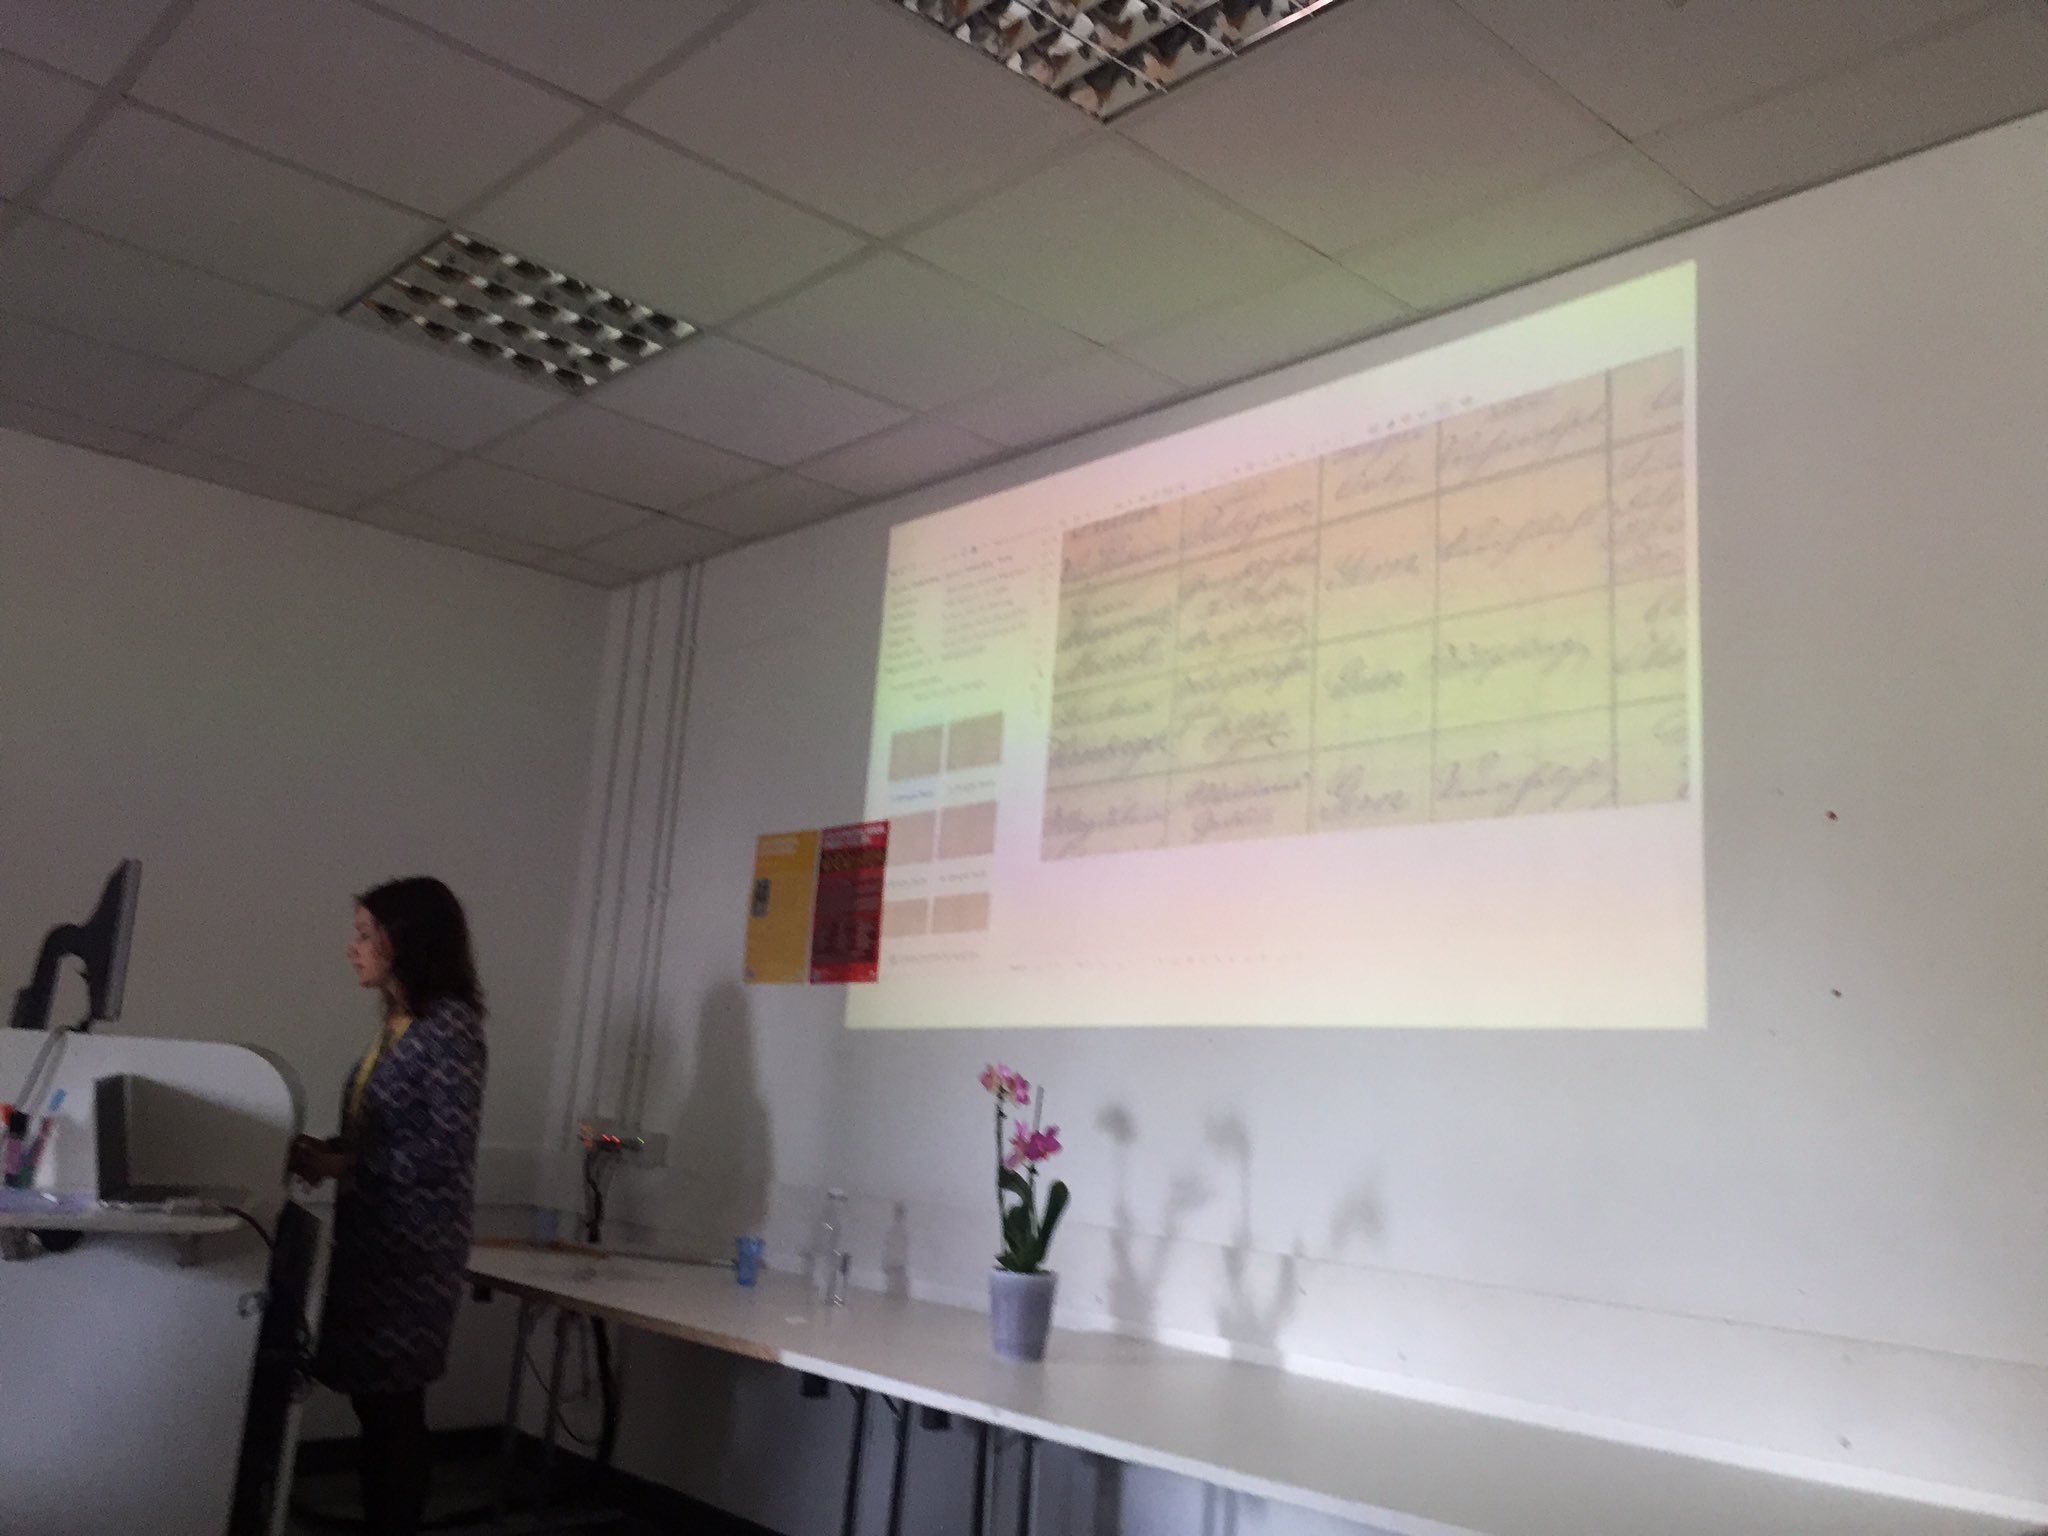 EM outlining challenges of changing names of dioceses; using READ/Transkribus tables become info & info becomes knowledge #s139 #IMC2017 https://t.co/PCCbLy1Imi